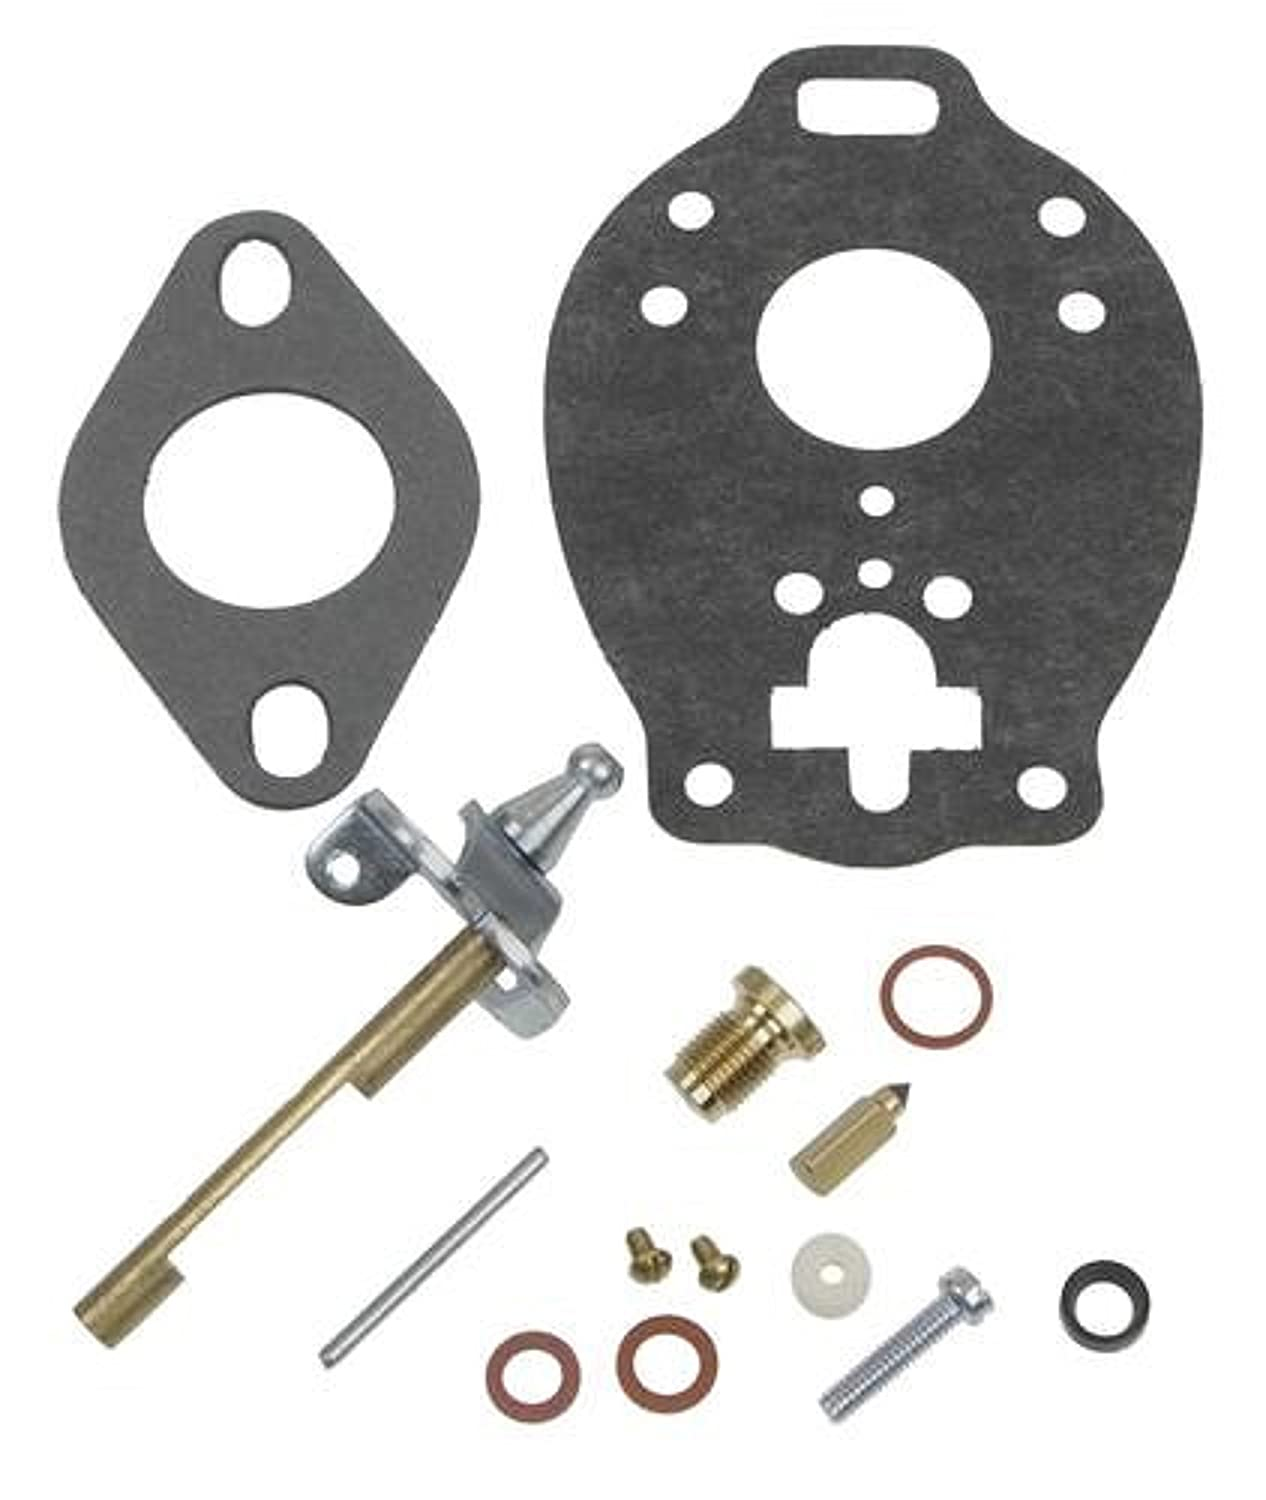 Amazon com tisco bk45v carburetor repair kit agricultural machinery spare and replacement parts patio lawn garden